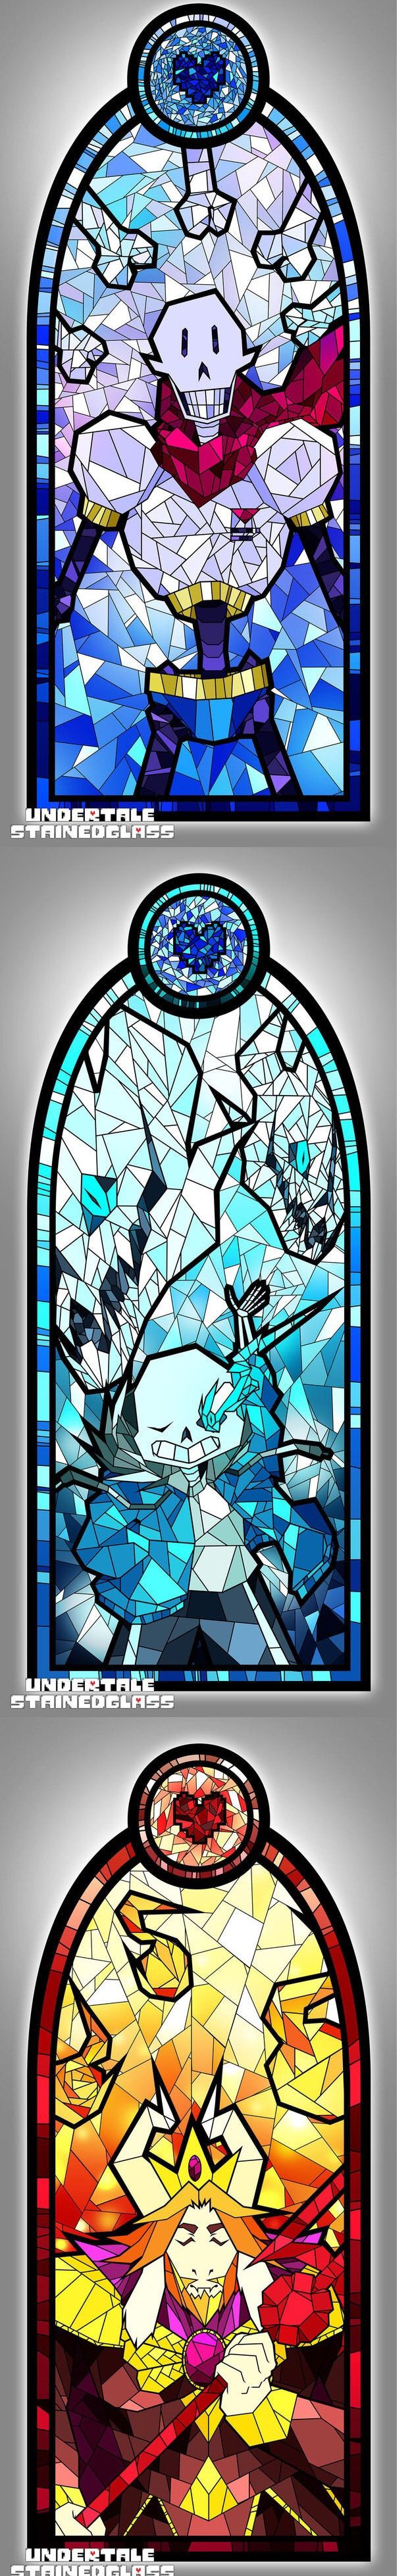 Undertale characters made in stained glass [Undertale, P1] - 9GAG